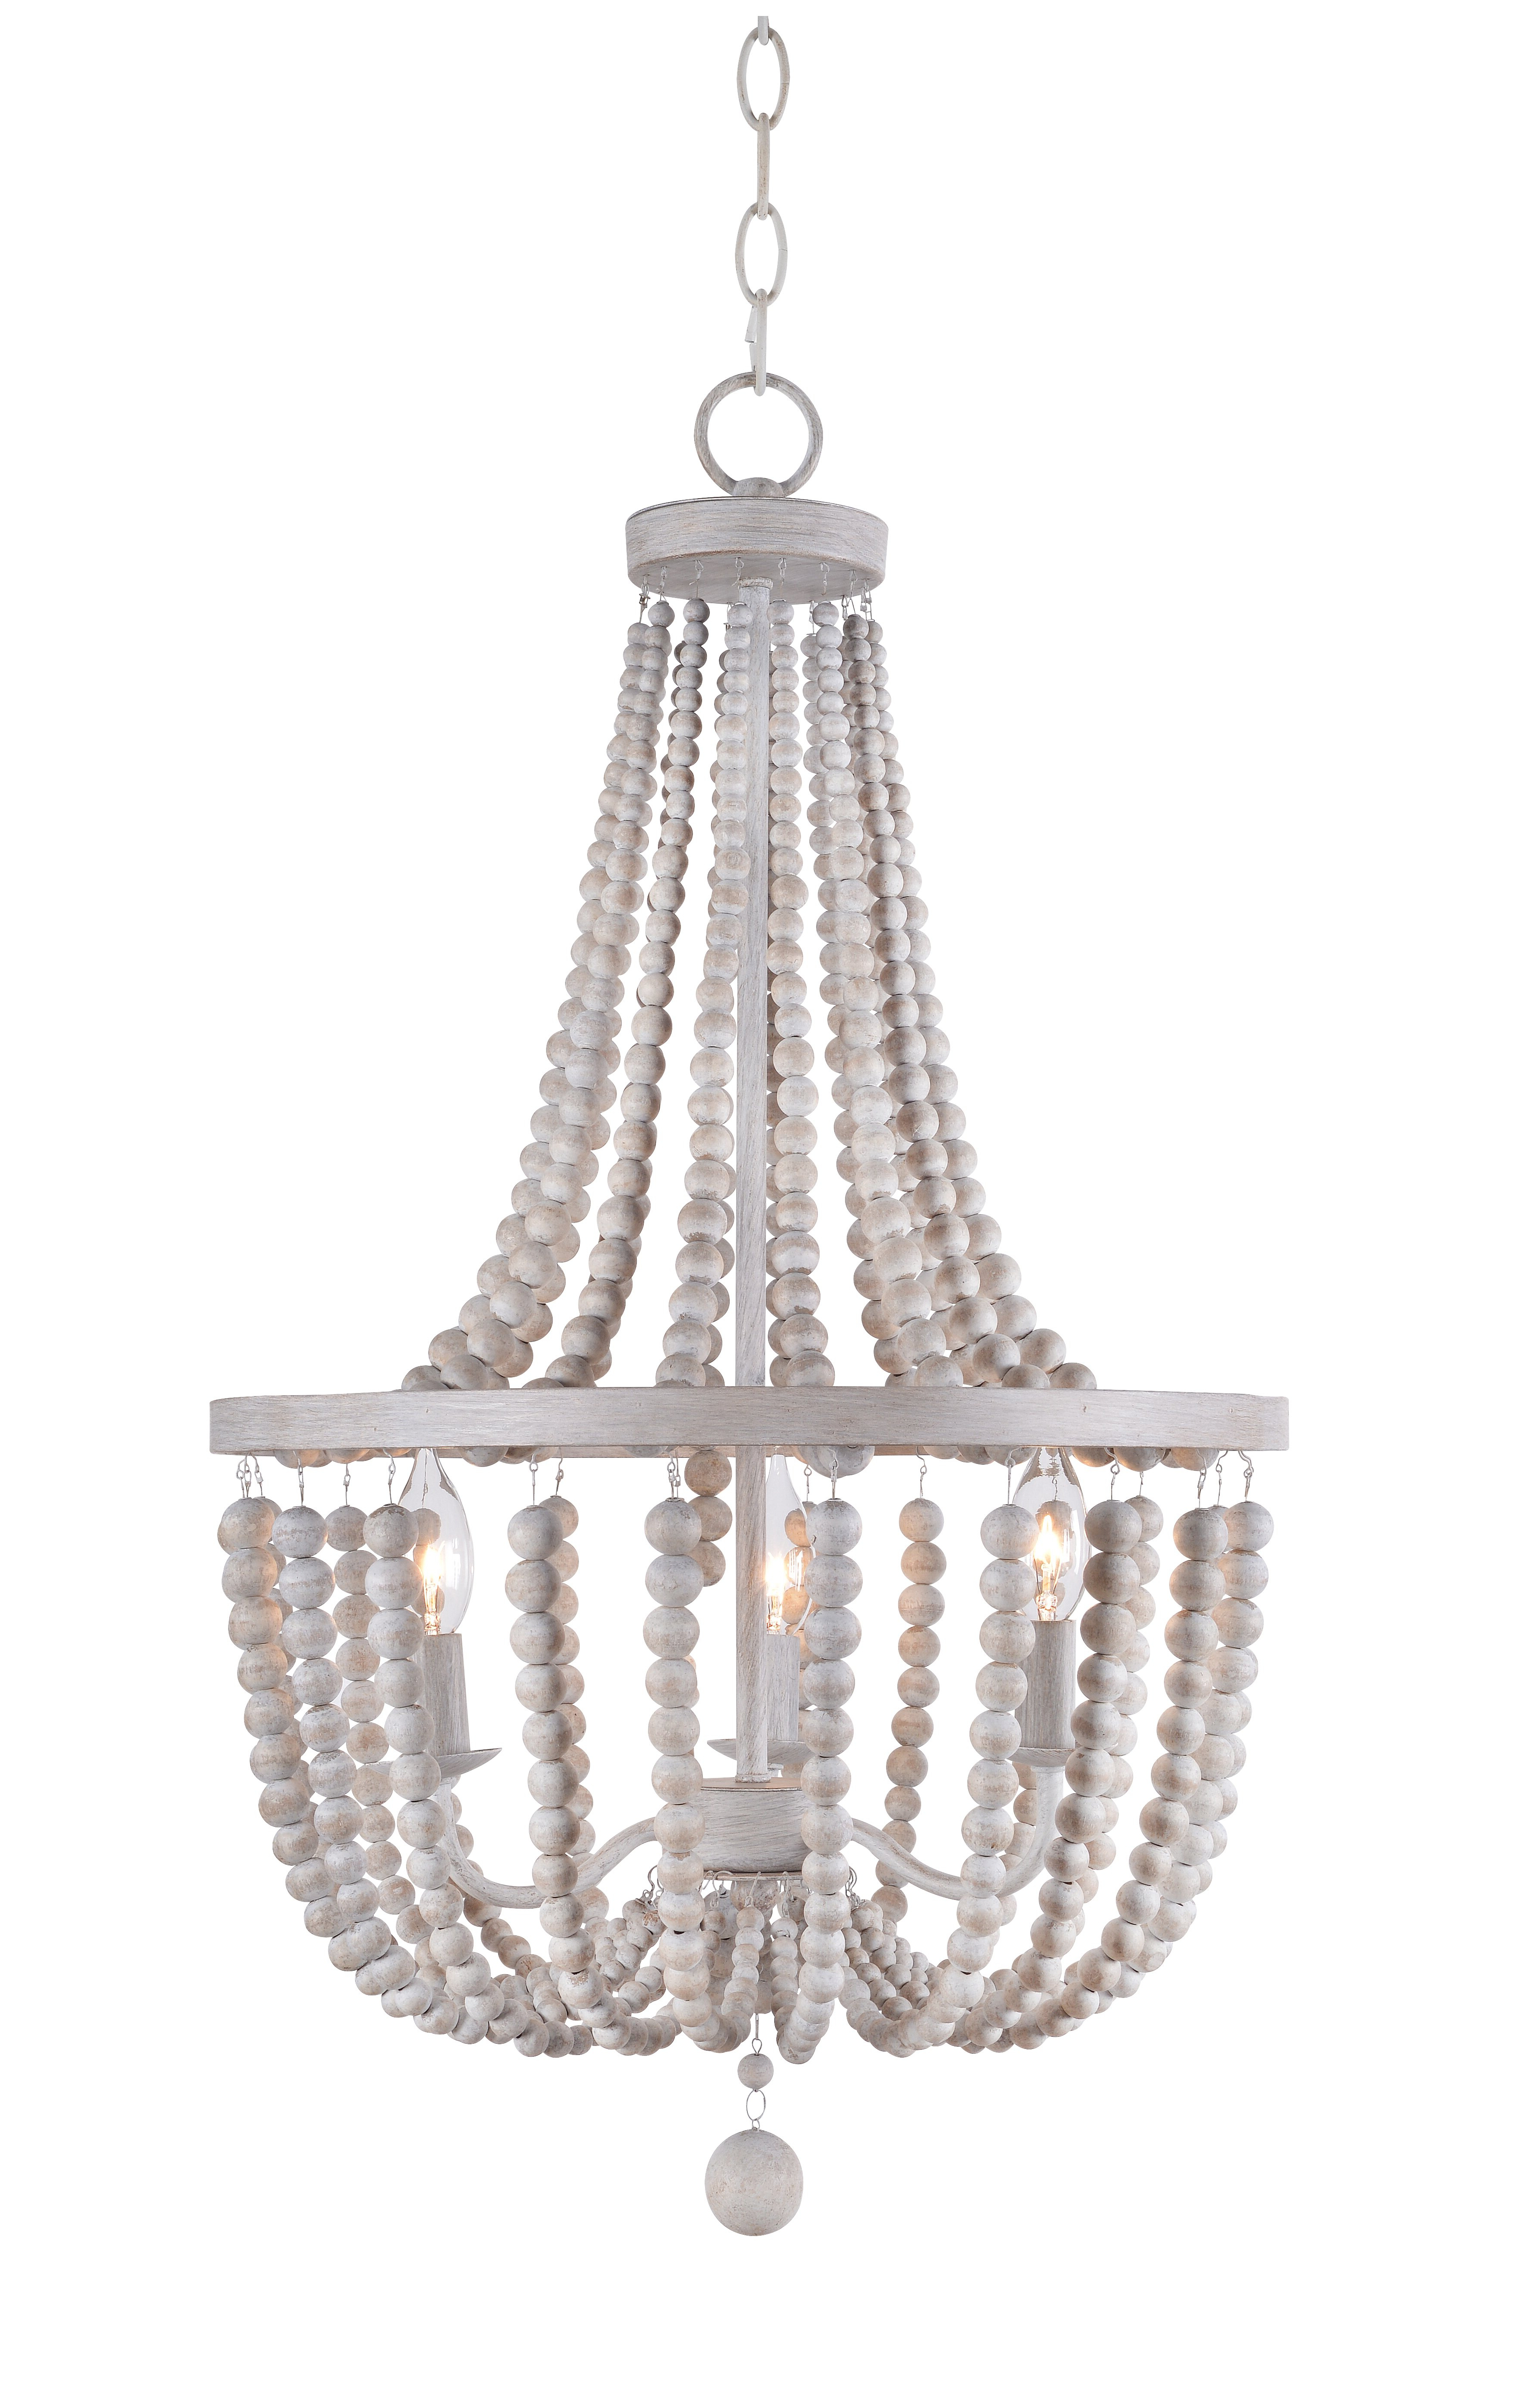 Wayfair Intended For Widely Used Ladonna 5 Light Novelty Chandeliers (View 15 of 20)